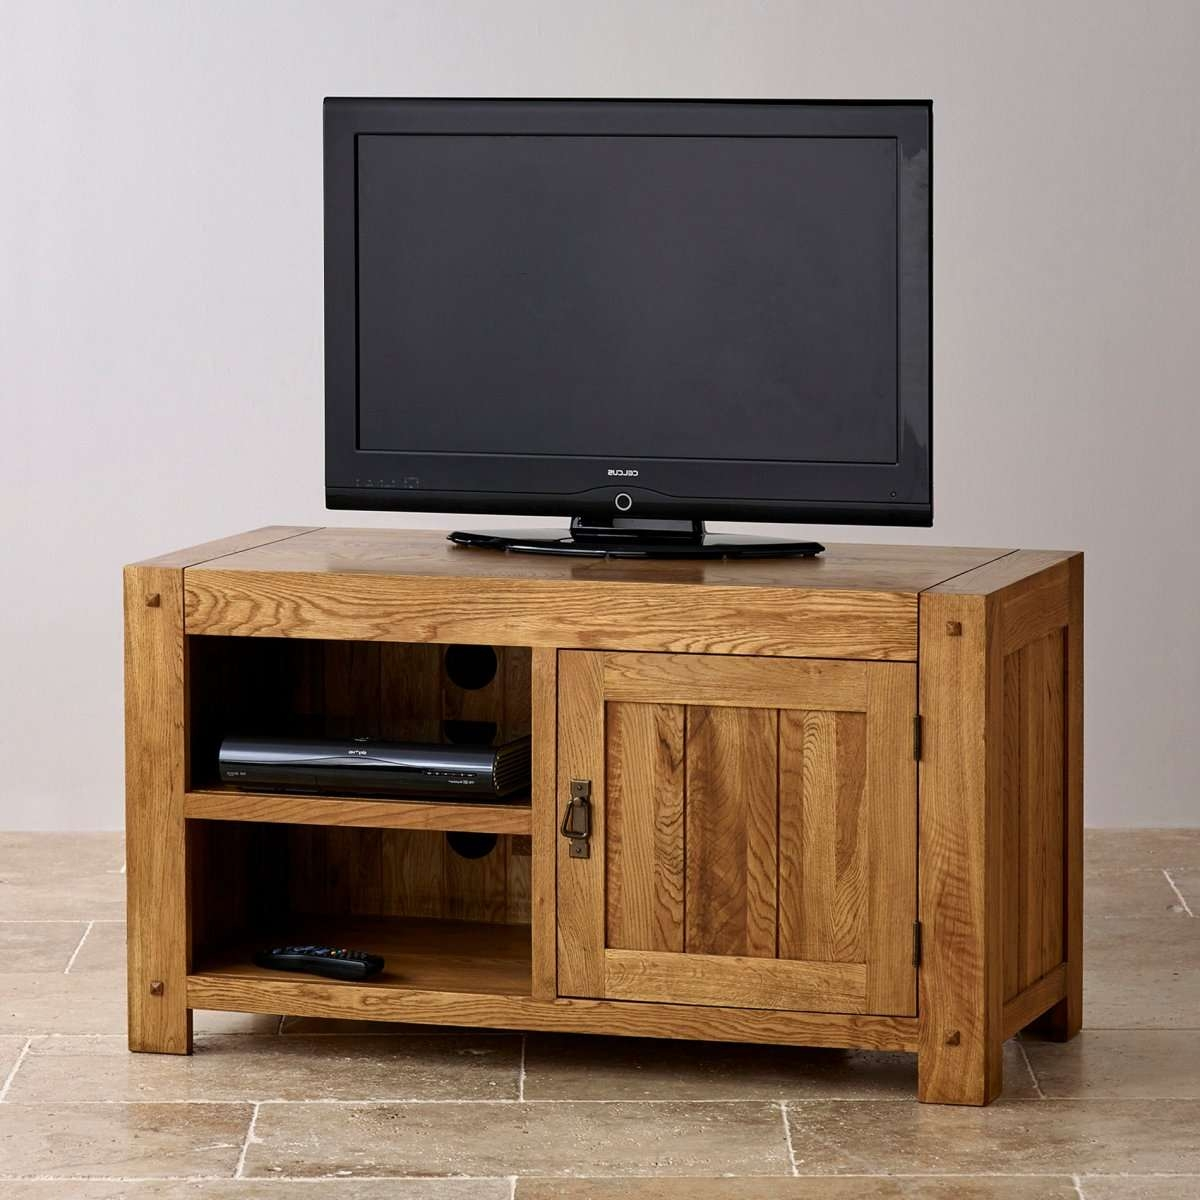 Oak Tv Cabinets J22 In Wonderful Home Remodeling Inspiration With Inside Oak Tv Cabinets (View 14 of 20)